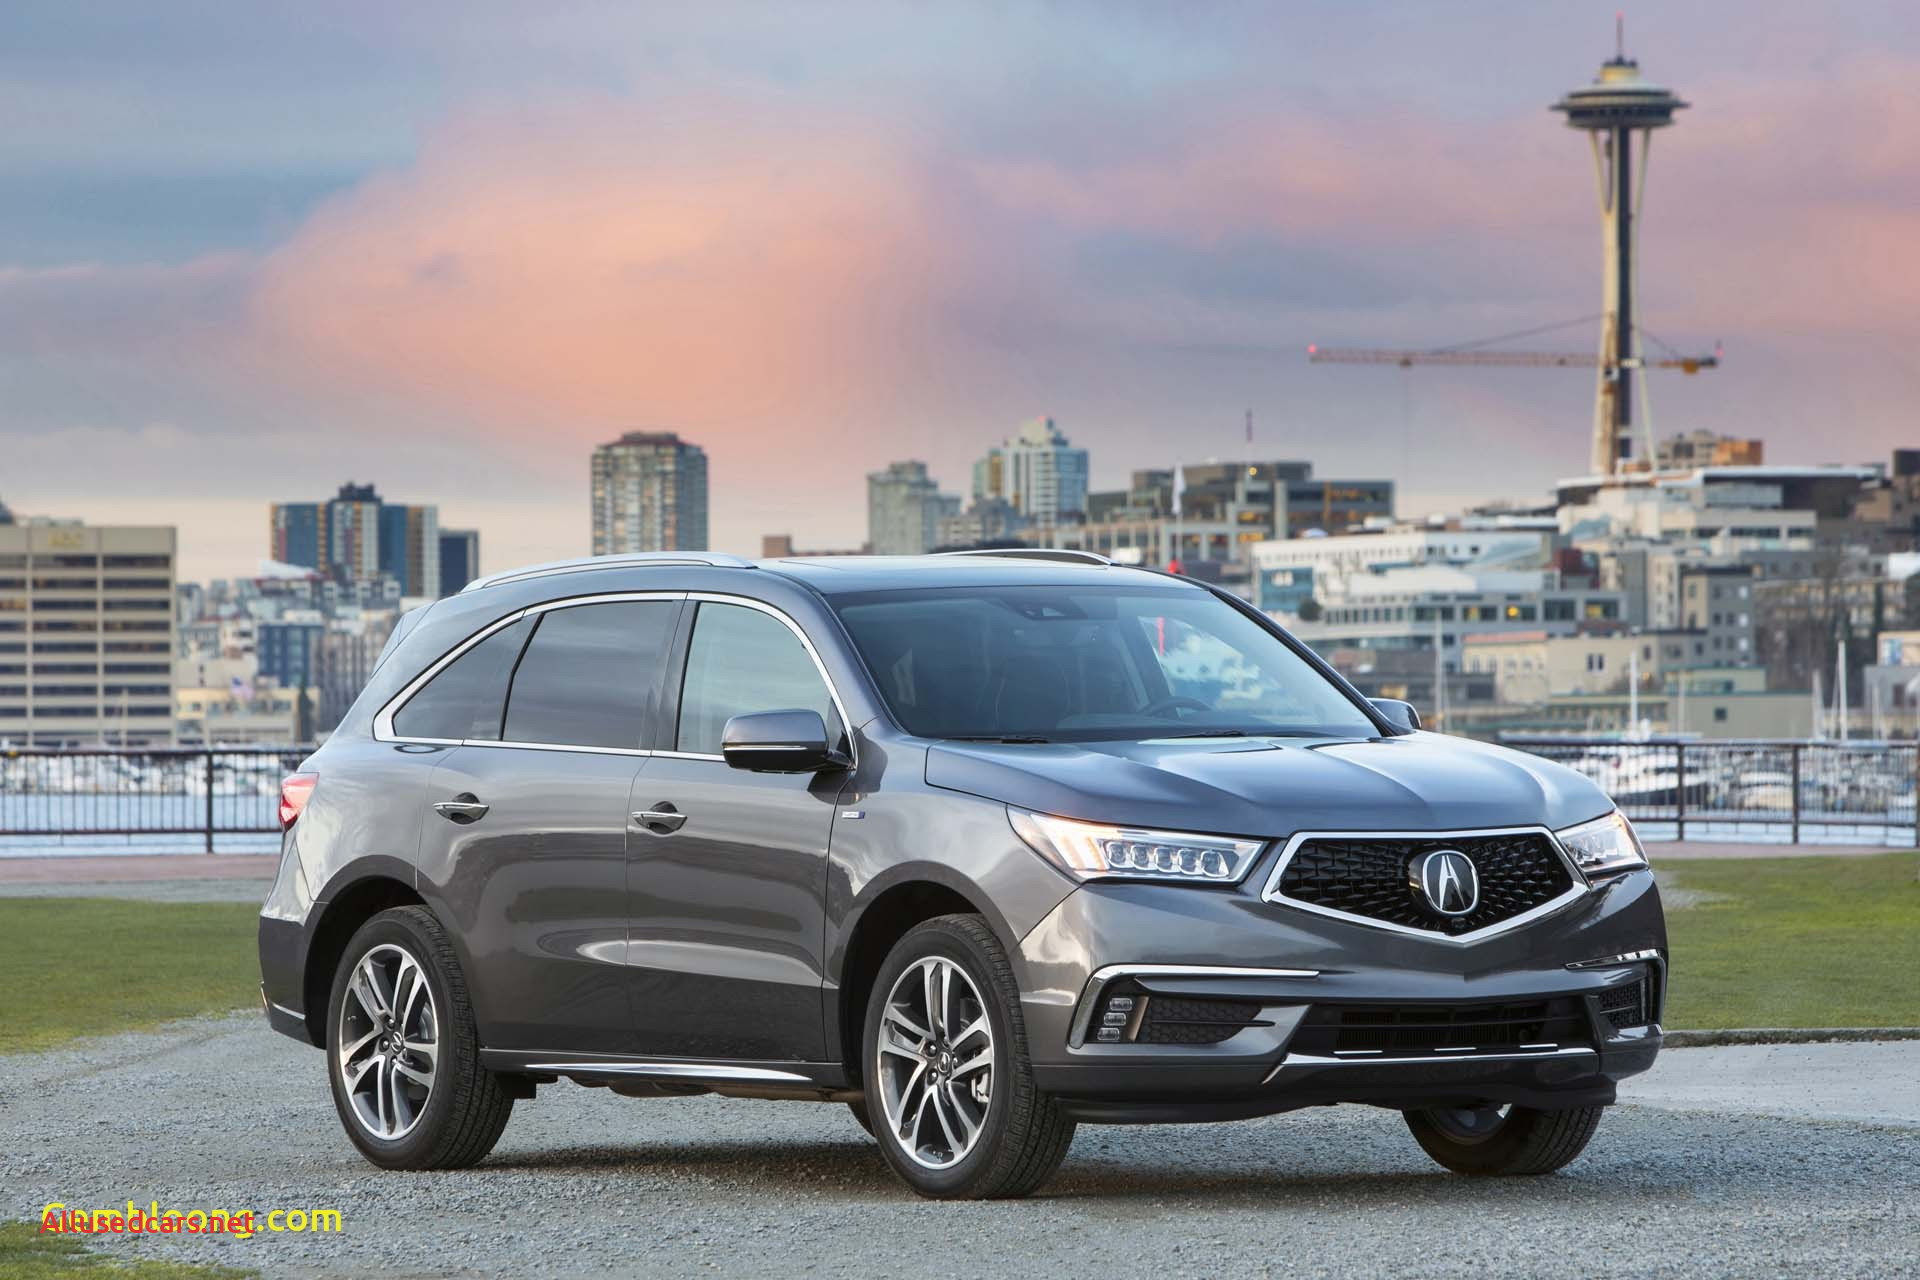 2016 acura mdx elegant 2020 acura mdx review ratings specs prices and s of 2016 acura mdx